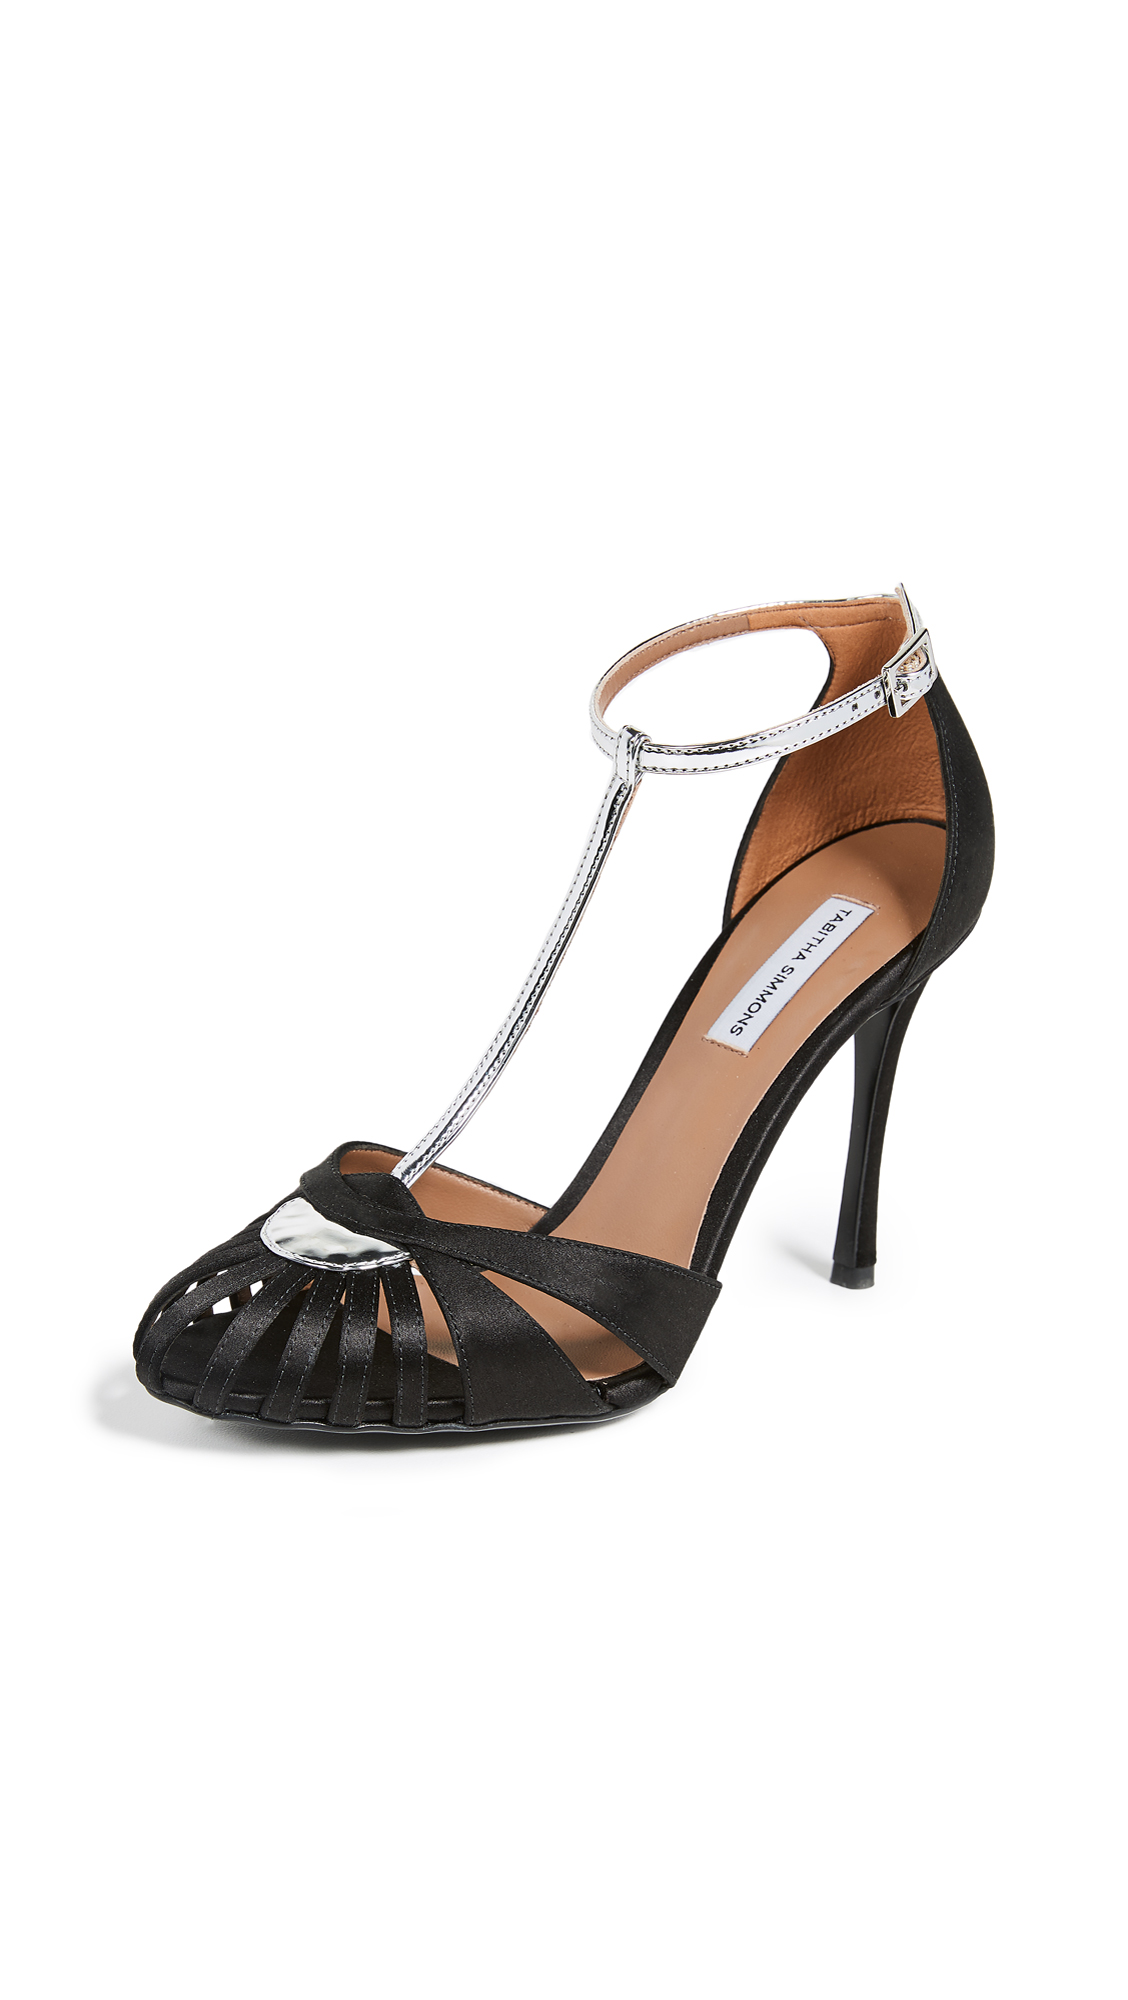 Tabitha Simmons Chelsea Pumps - Black/Silver